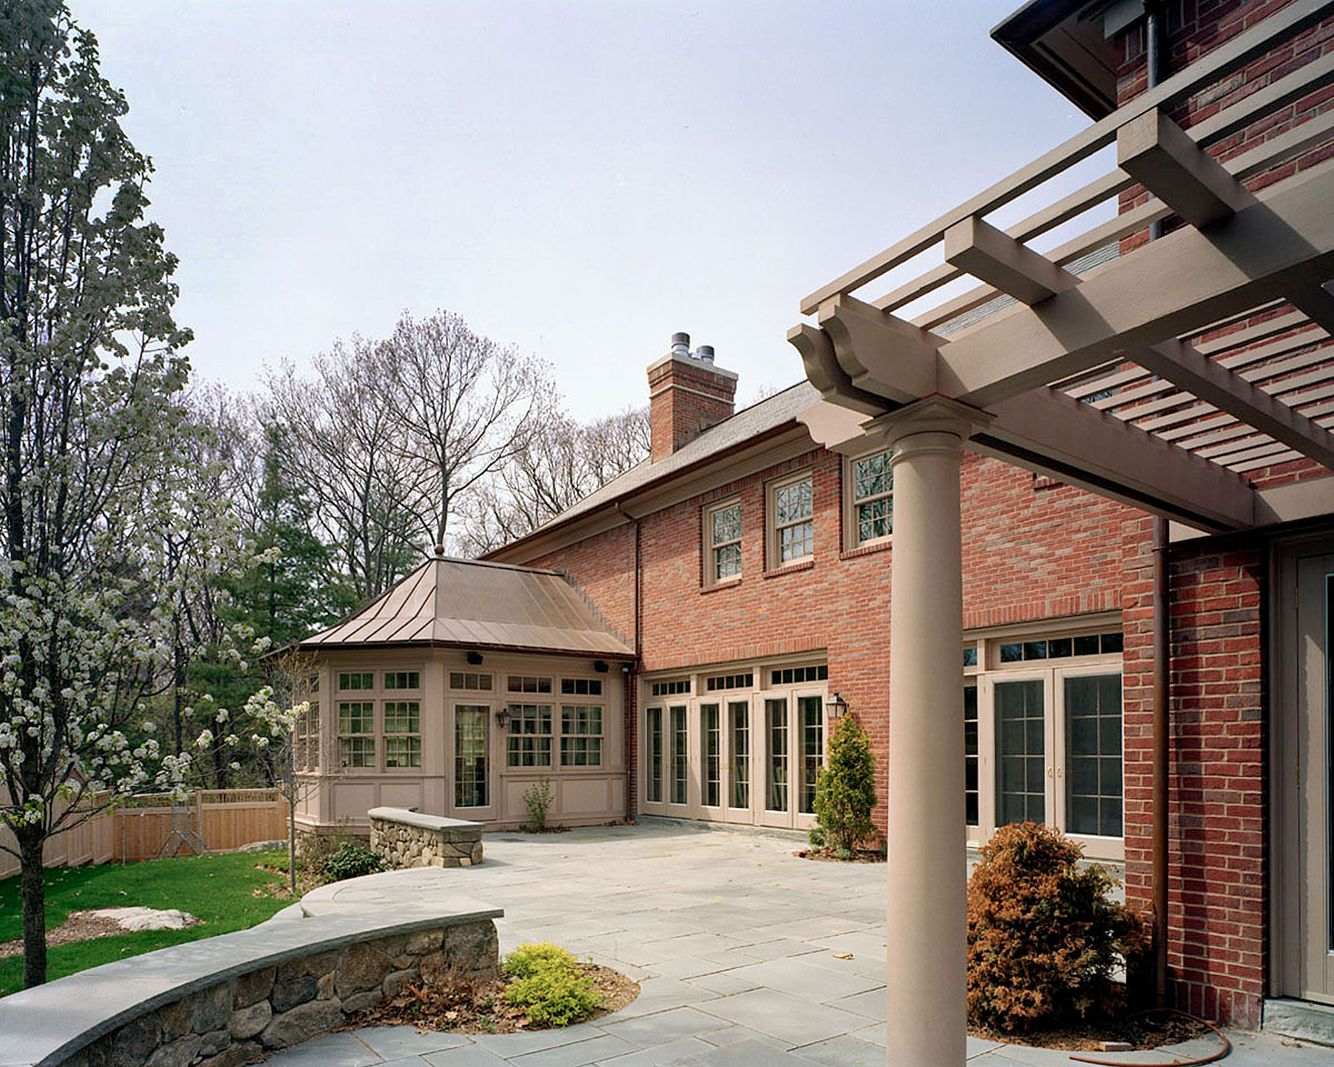 Residential House in Wellesley, MA.